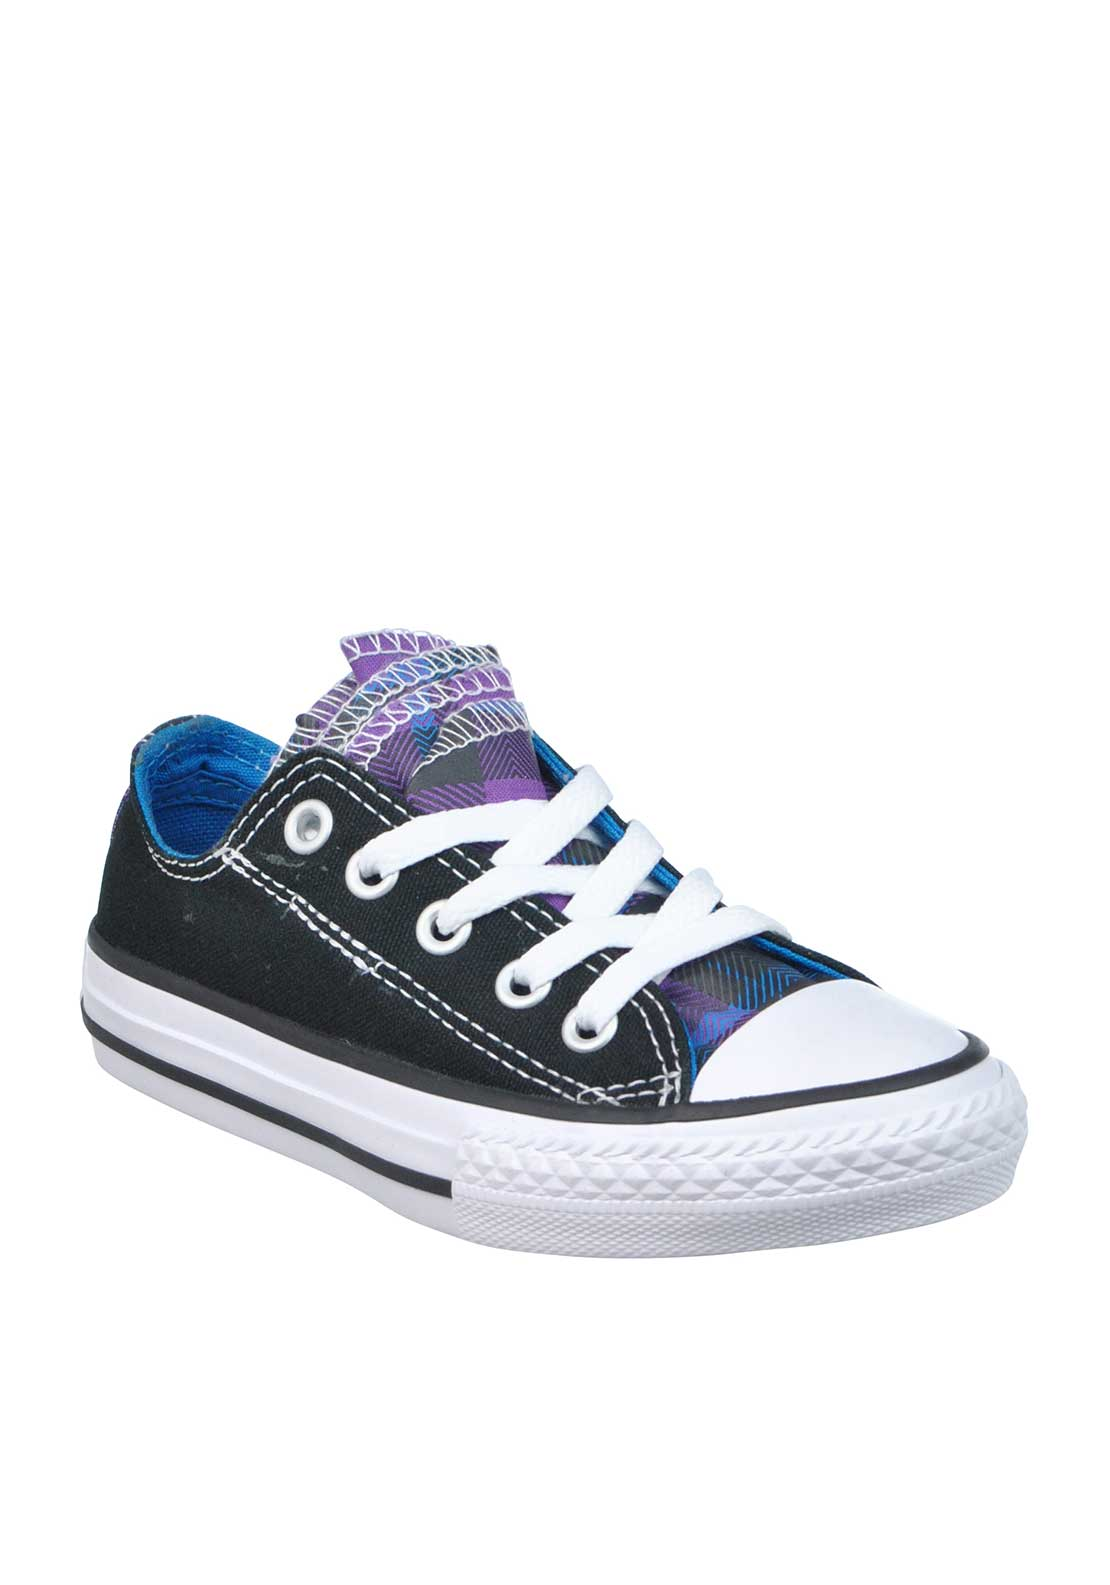 Converse Kids Tartan Layered Tongue All Star Canvas Trainers, Black Purple